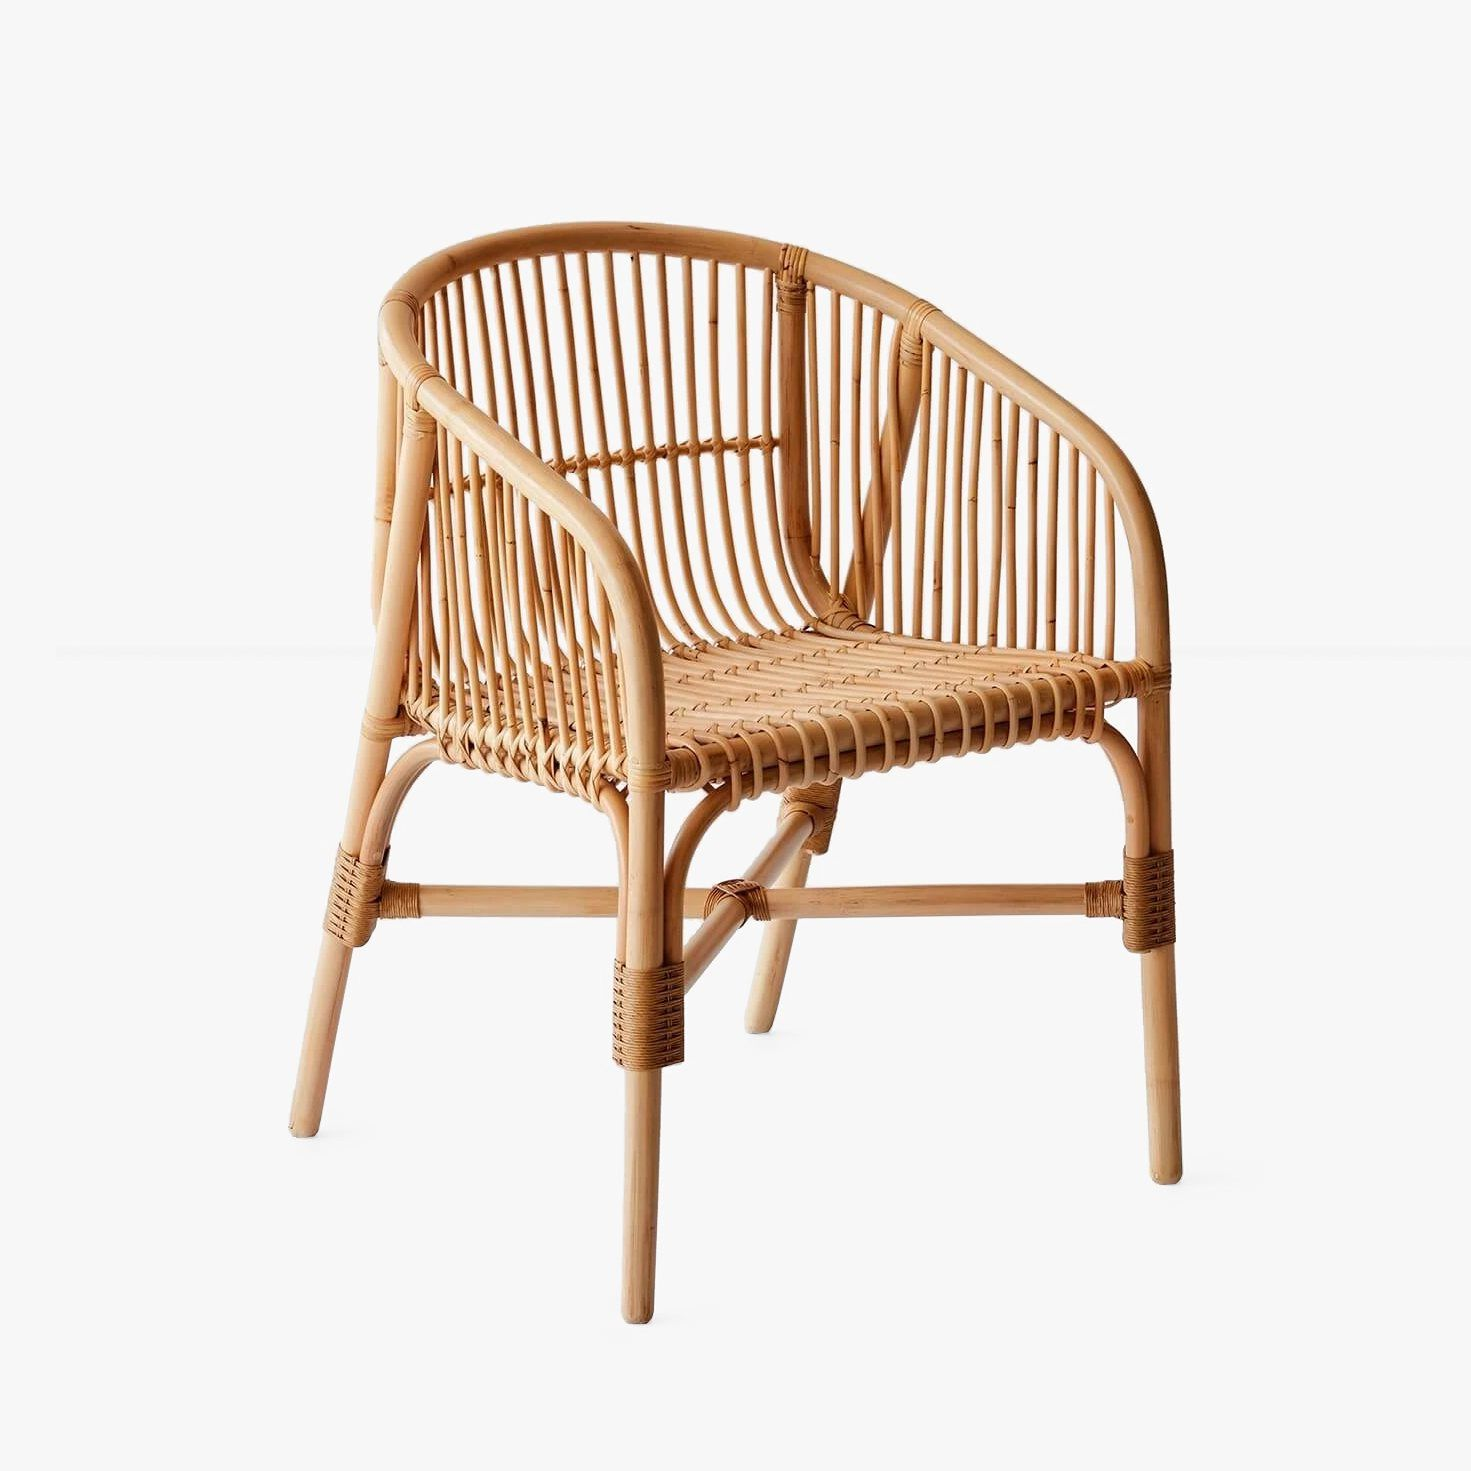 Jakarta Rattan Dining Chair By Artisans Of Cirebon For The Citizenry Up Interiors Rattan Dining Chairs Dining Chairs Chair